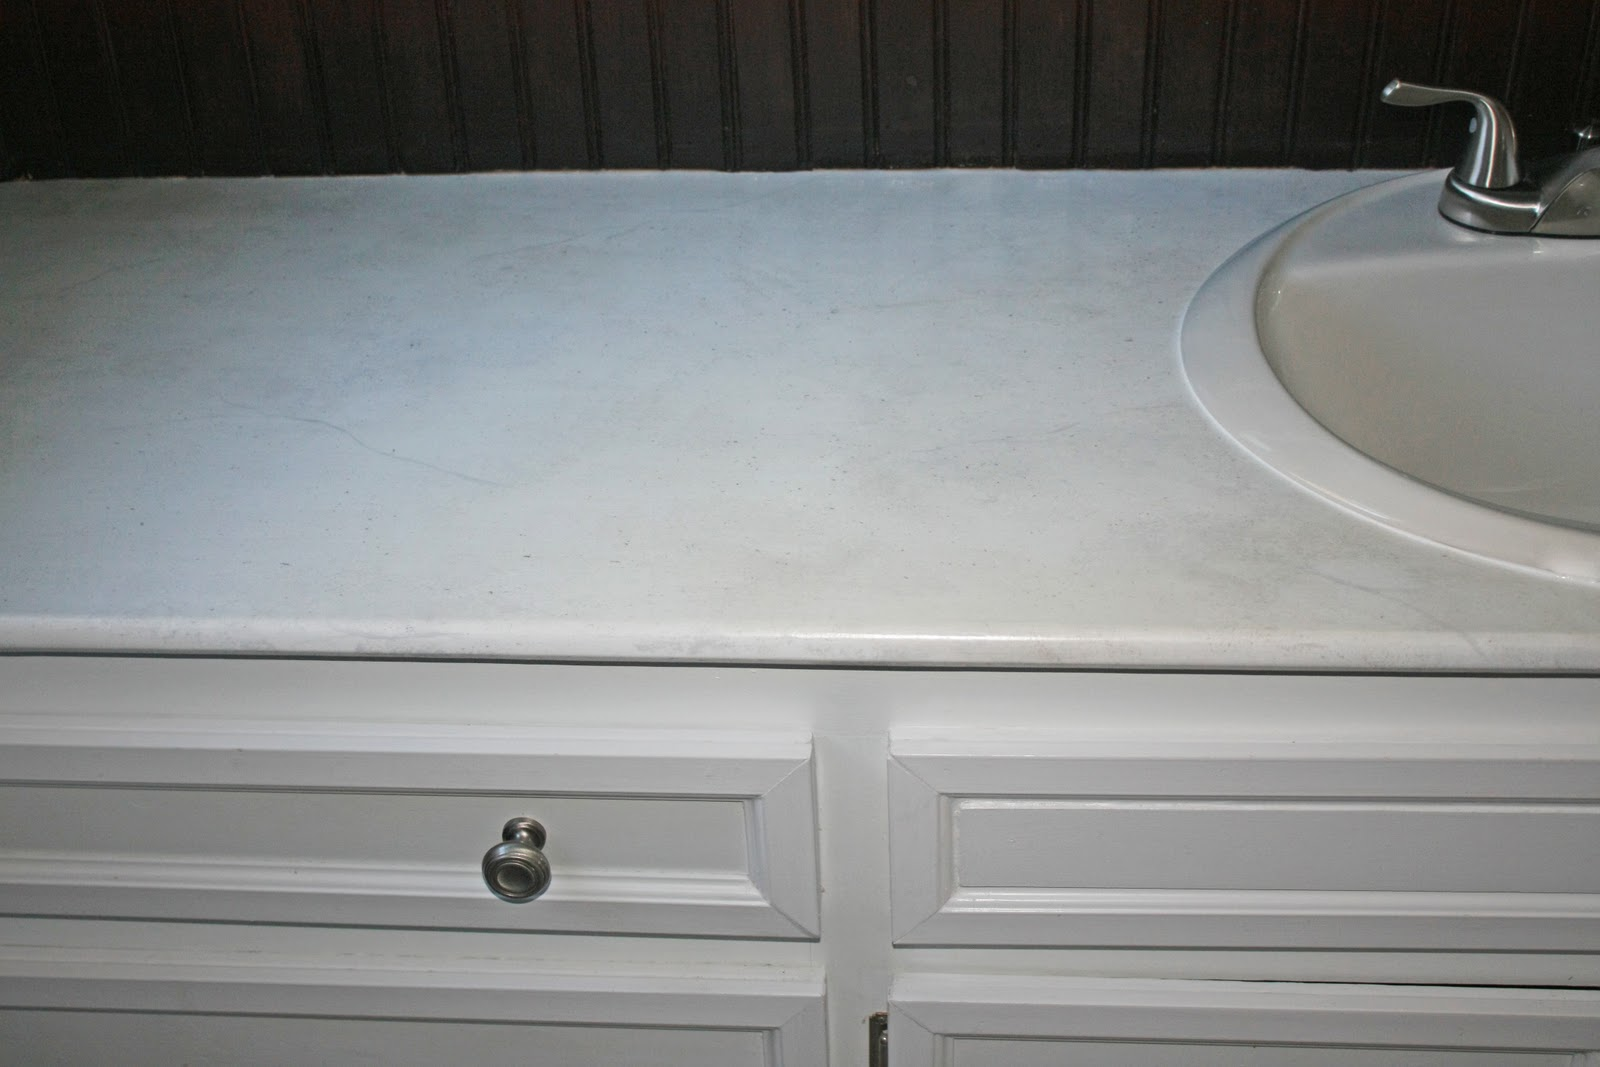 Make your own countertop! - Stacy Risenmay